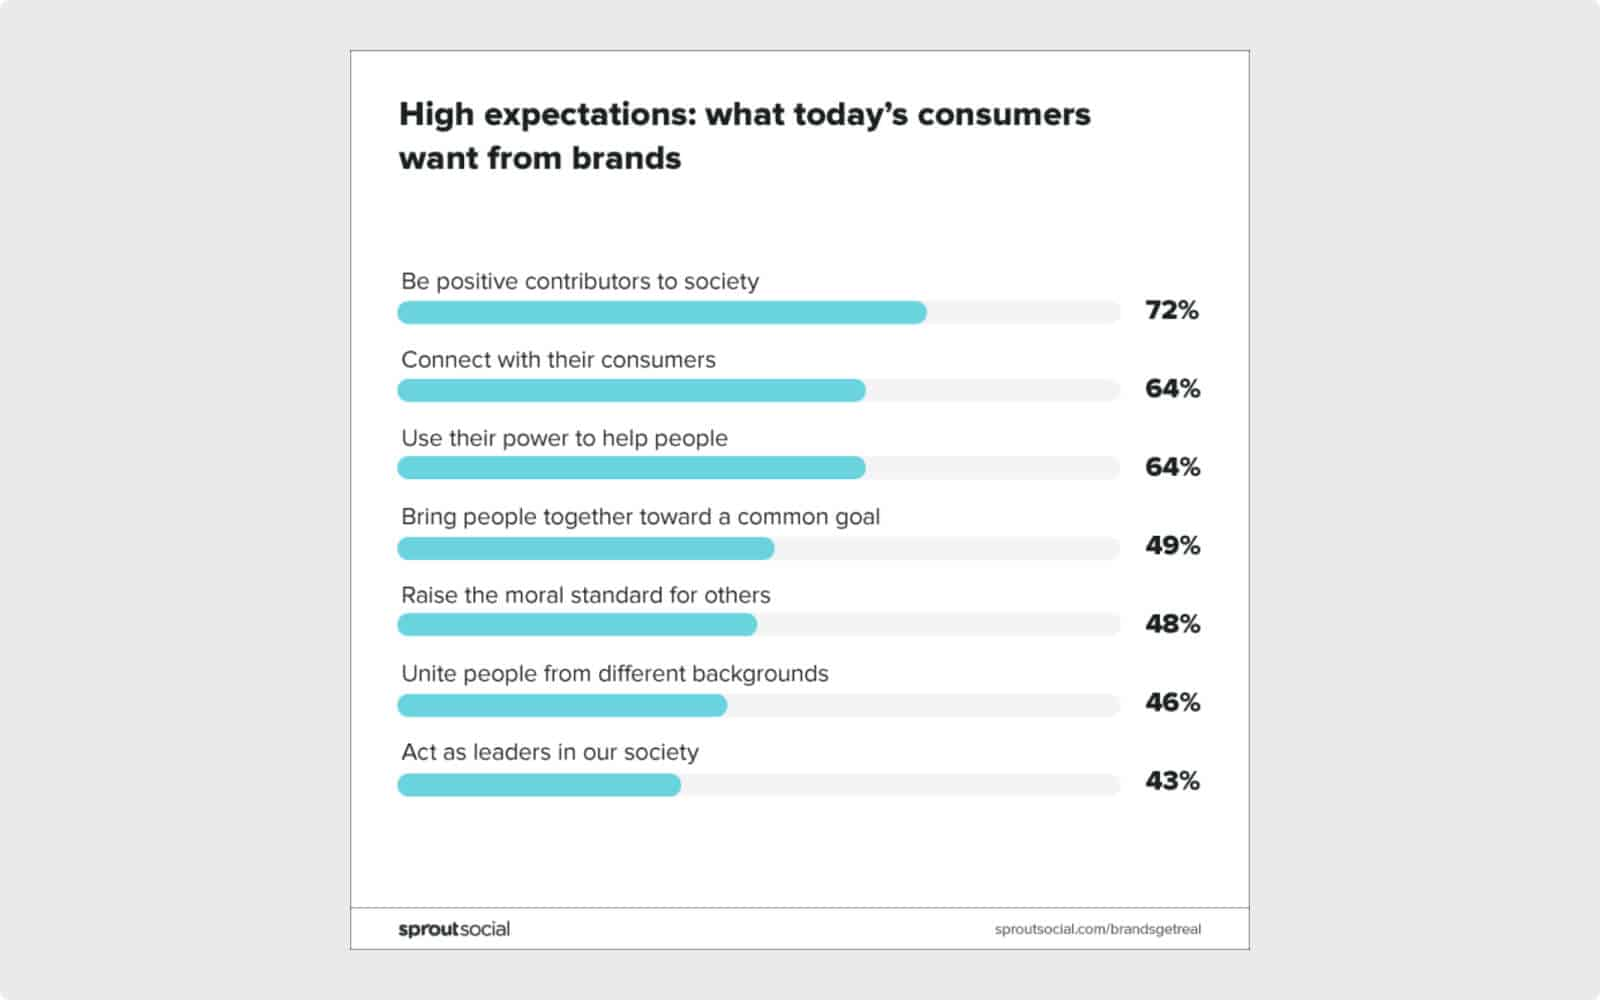 Consumers expect brands to be positive contributors to society. Image Source.